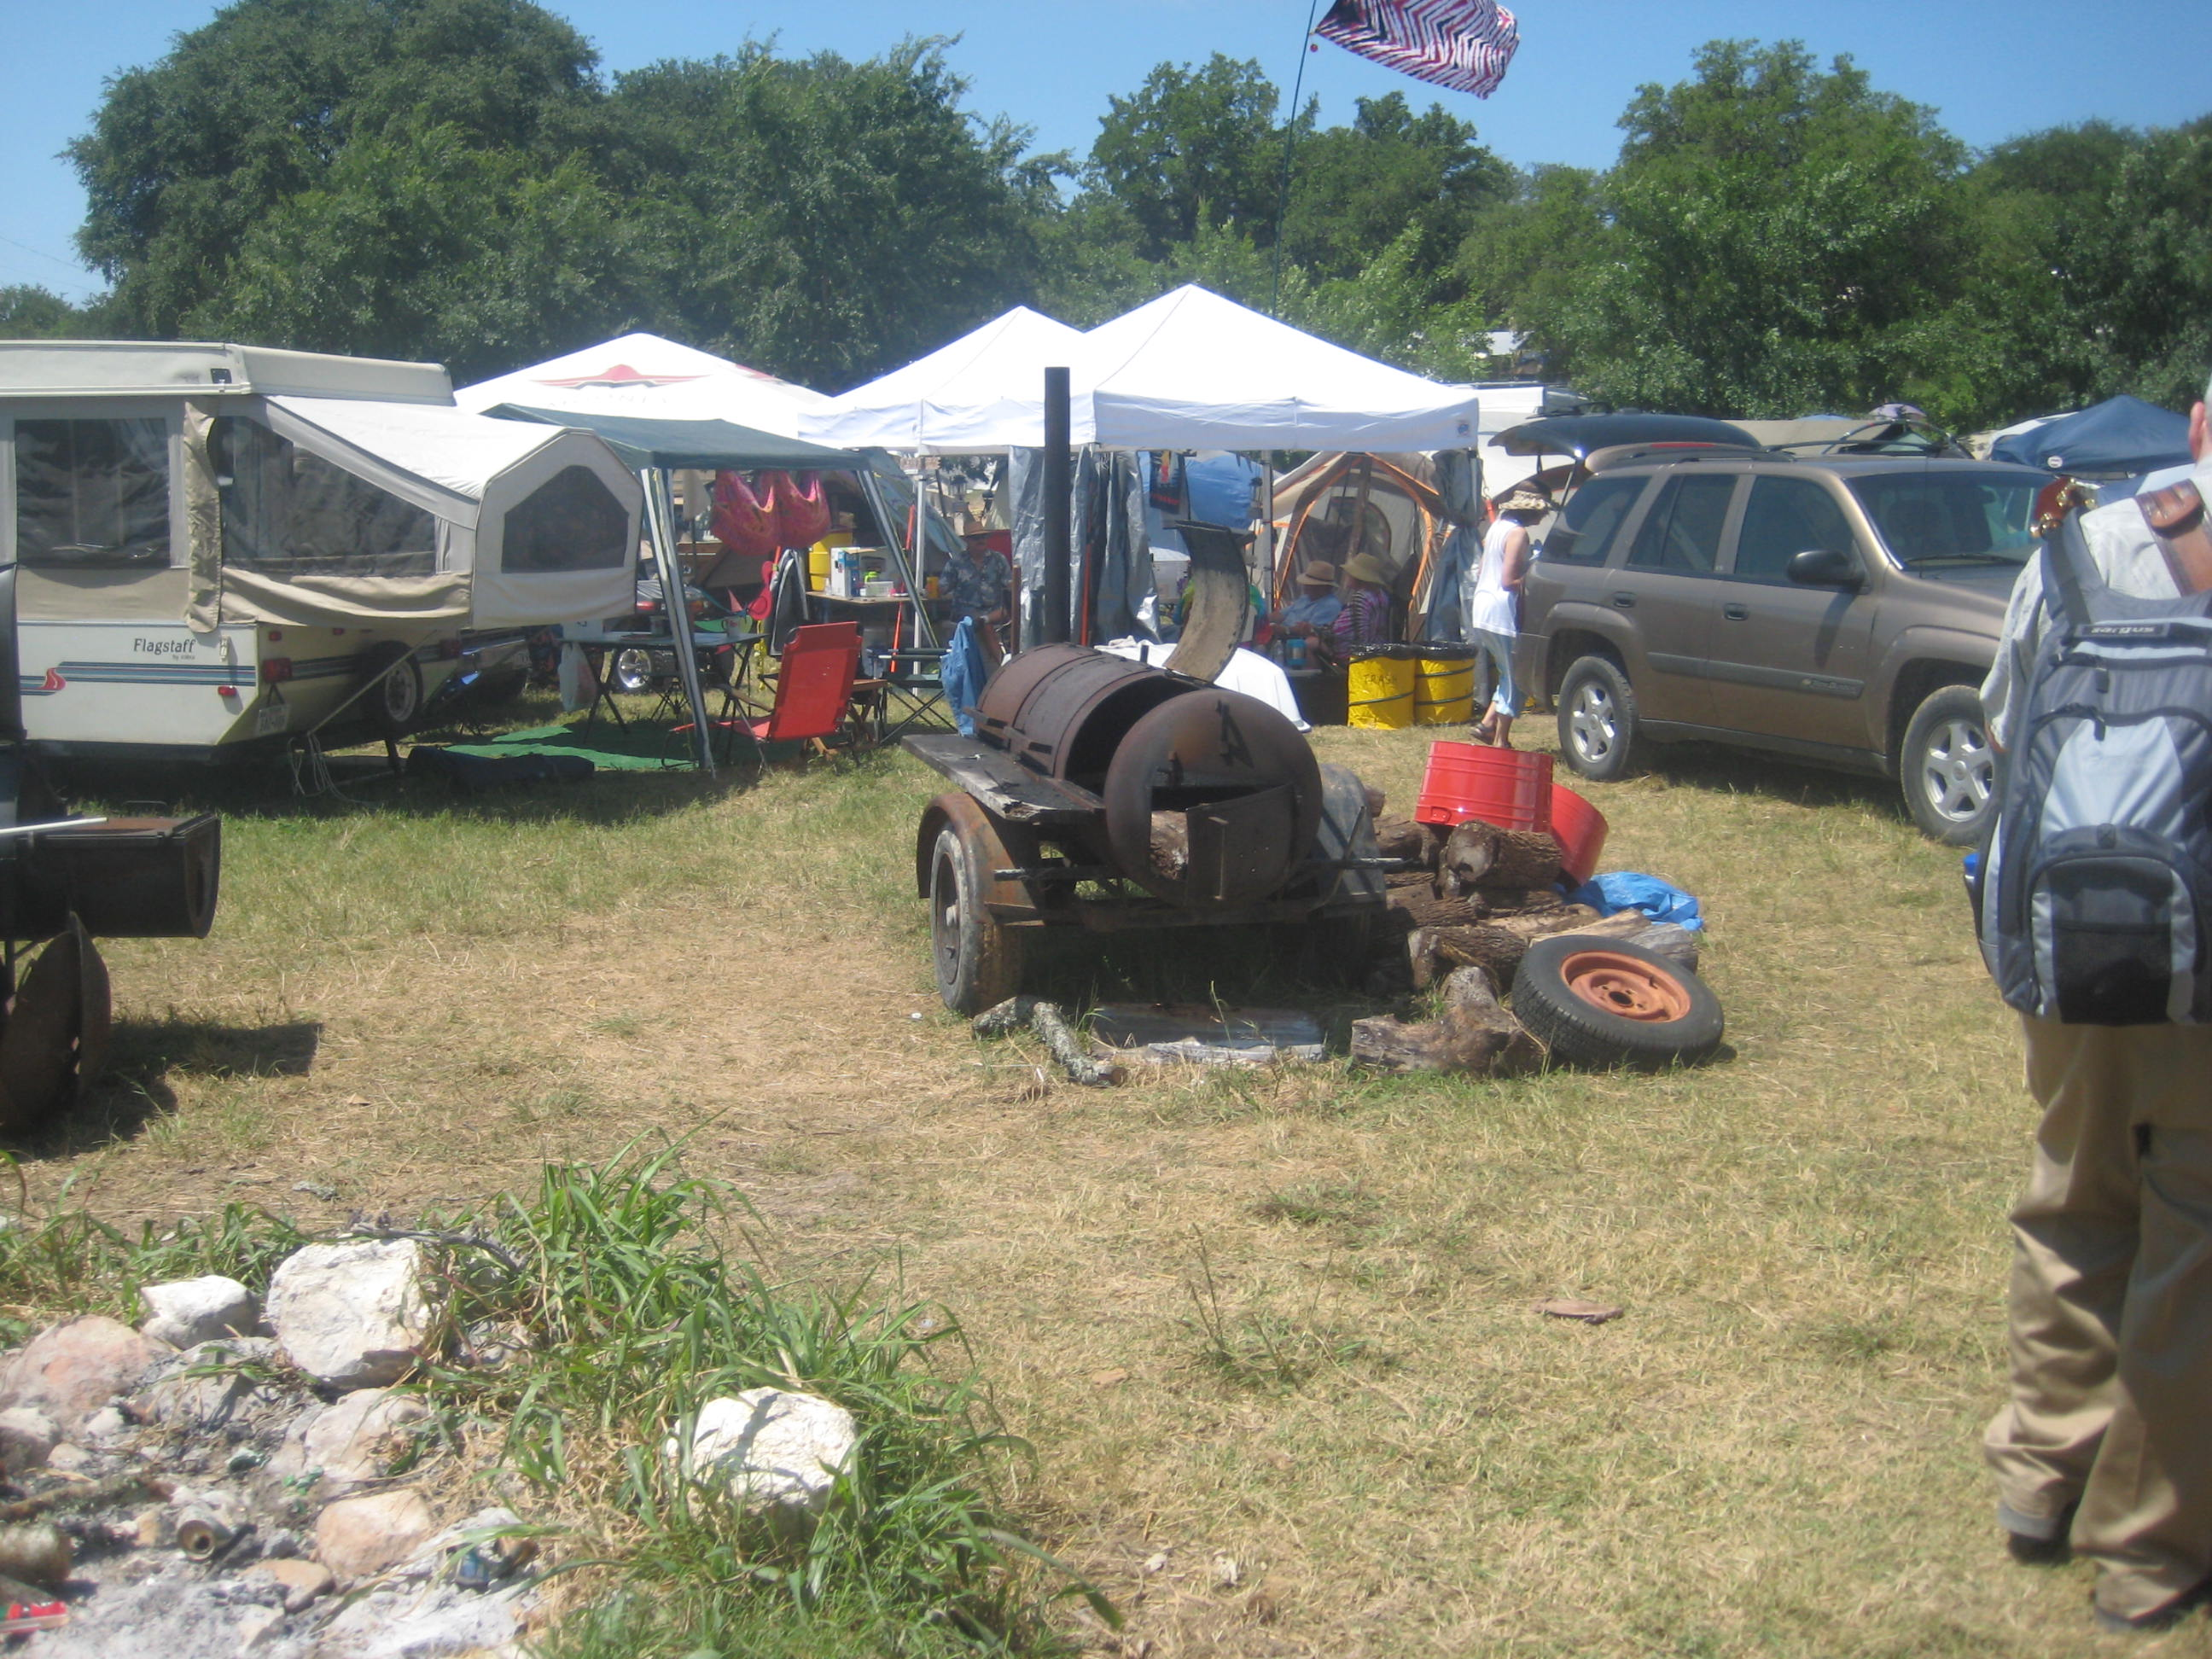 Kerrville Campground sights 2